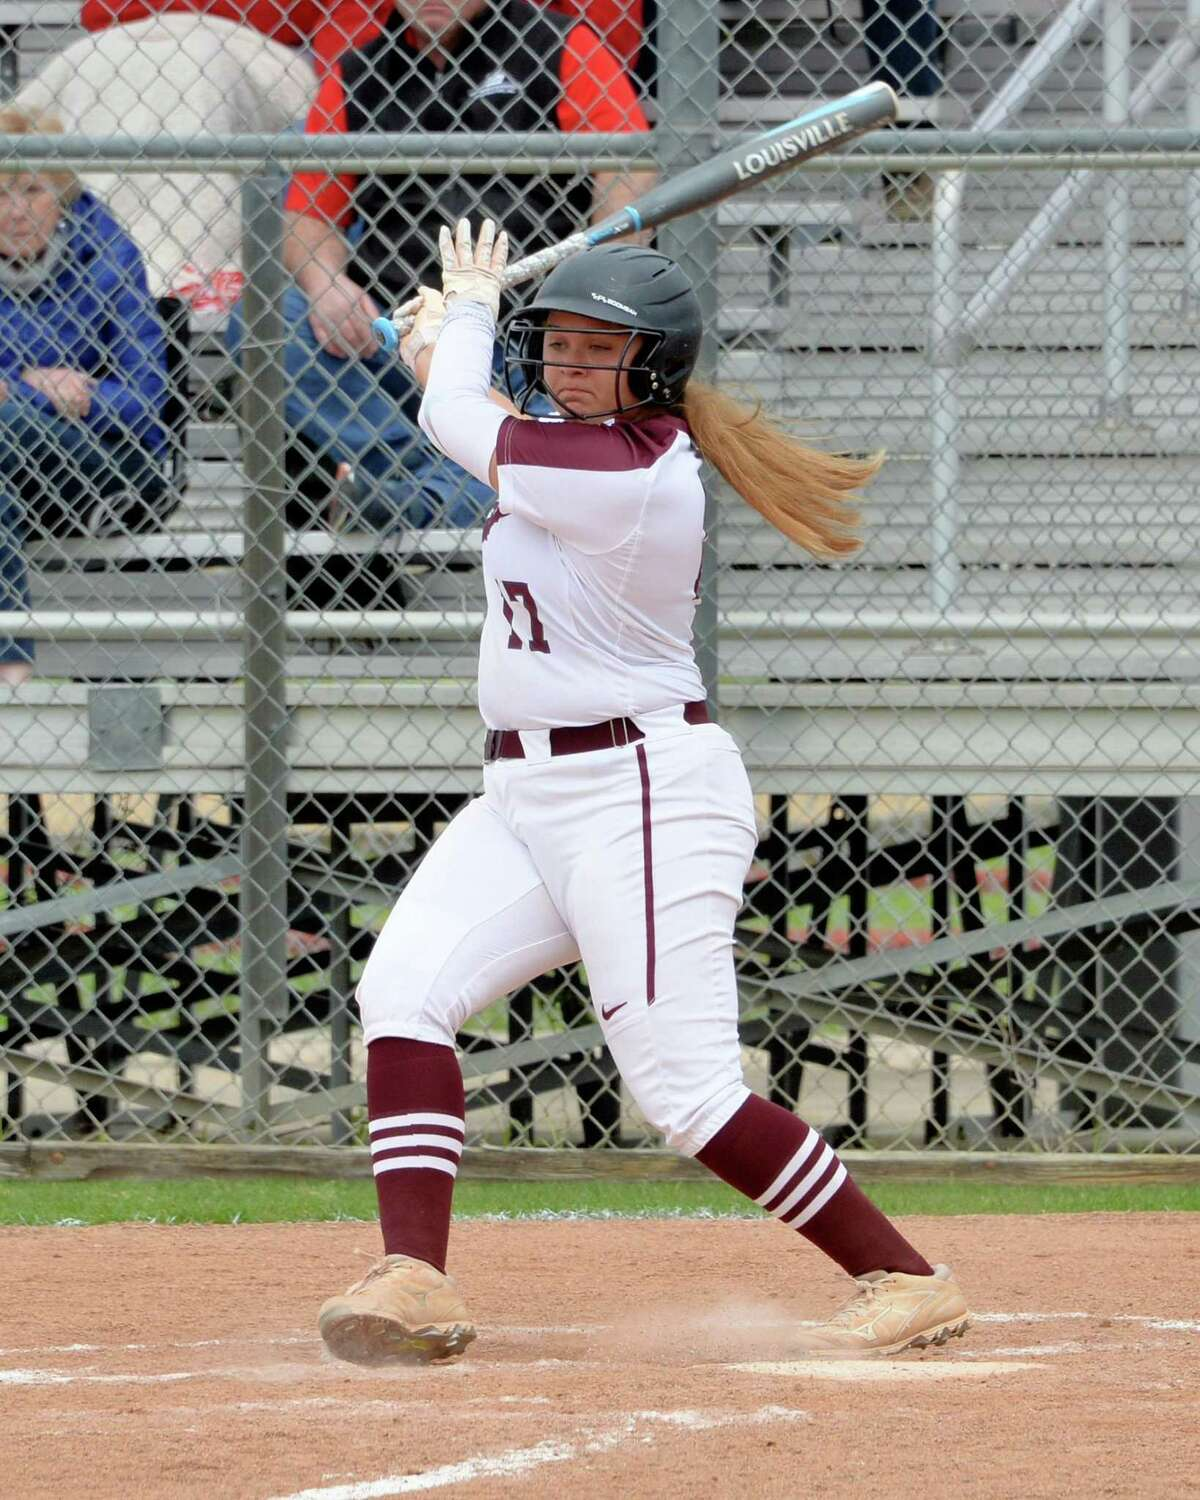 Alana Noble (17) of Cinco Ranch singles during the first inning in high school softball game between the Cinco Ranch Cougars and the Memorial Mustangs on Saturday, at Cinco Ranch High School, Katy, TX.